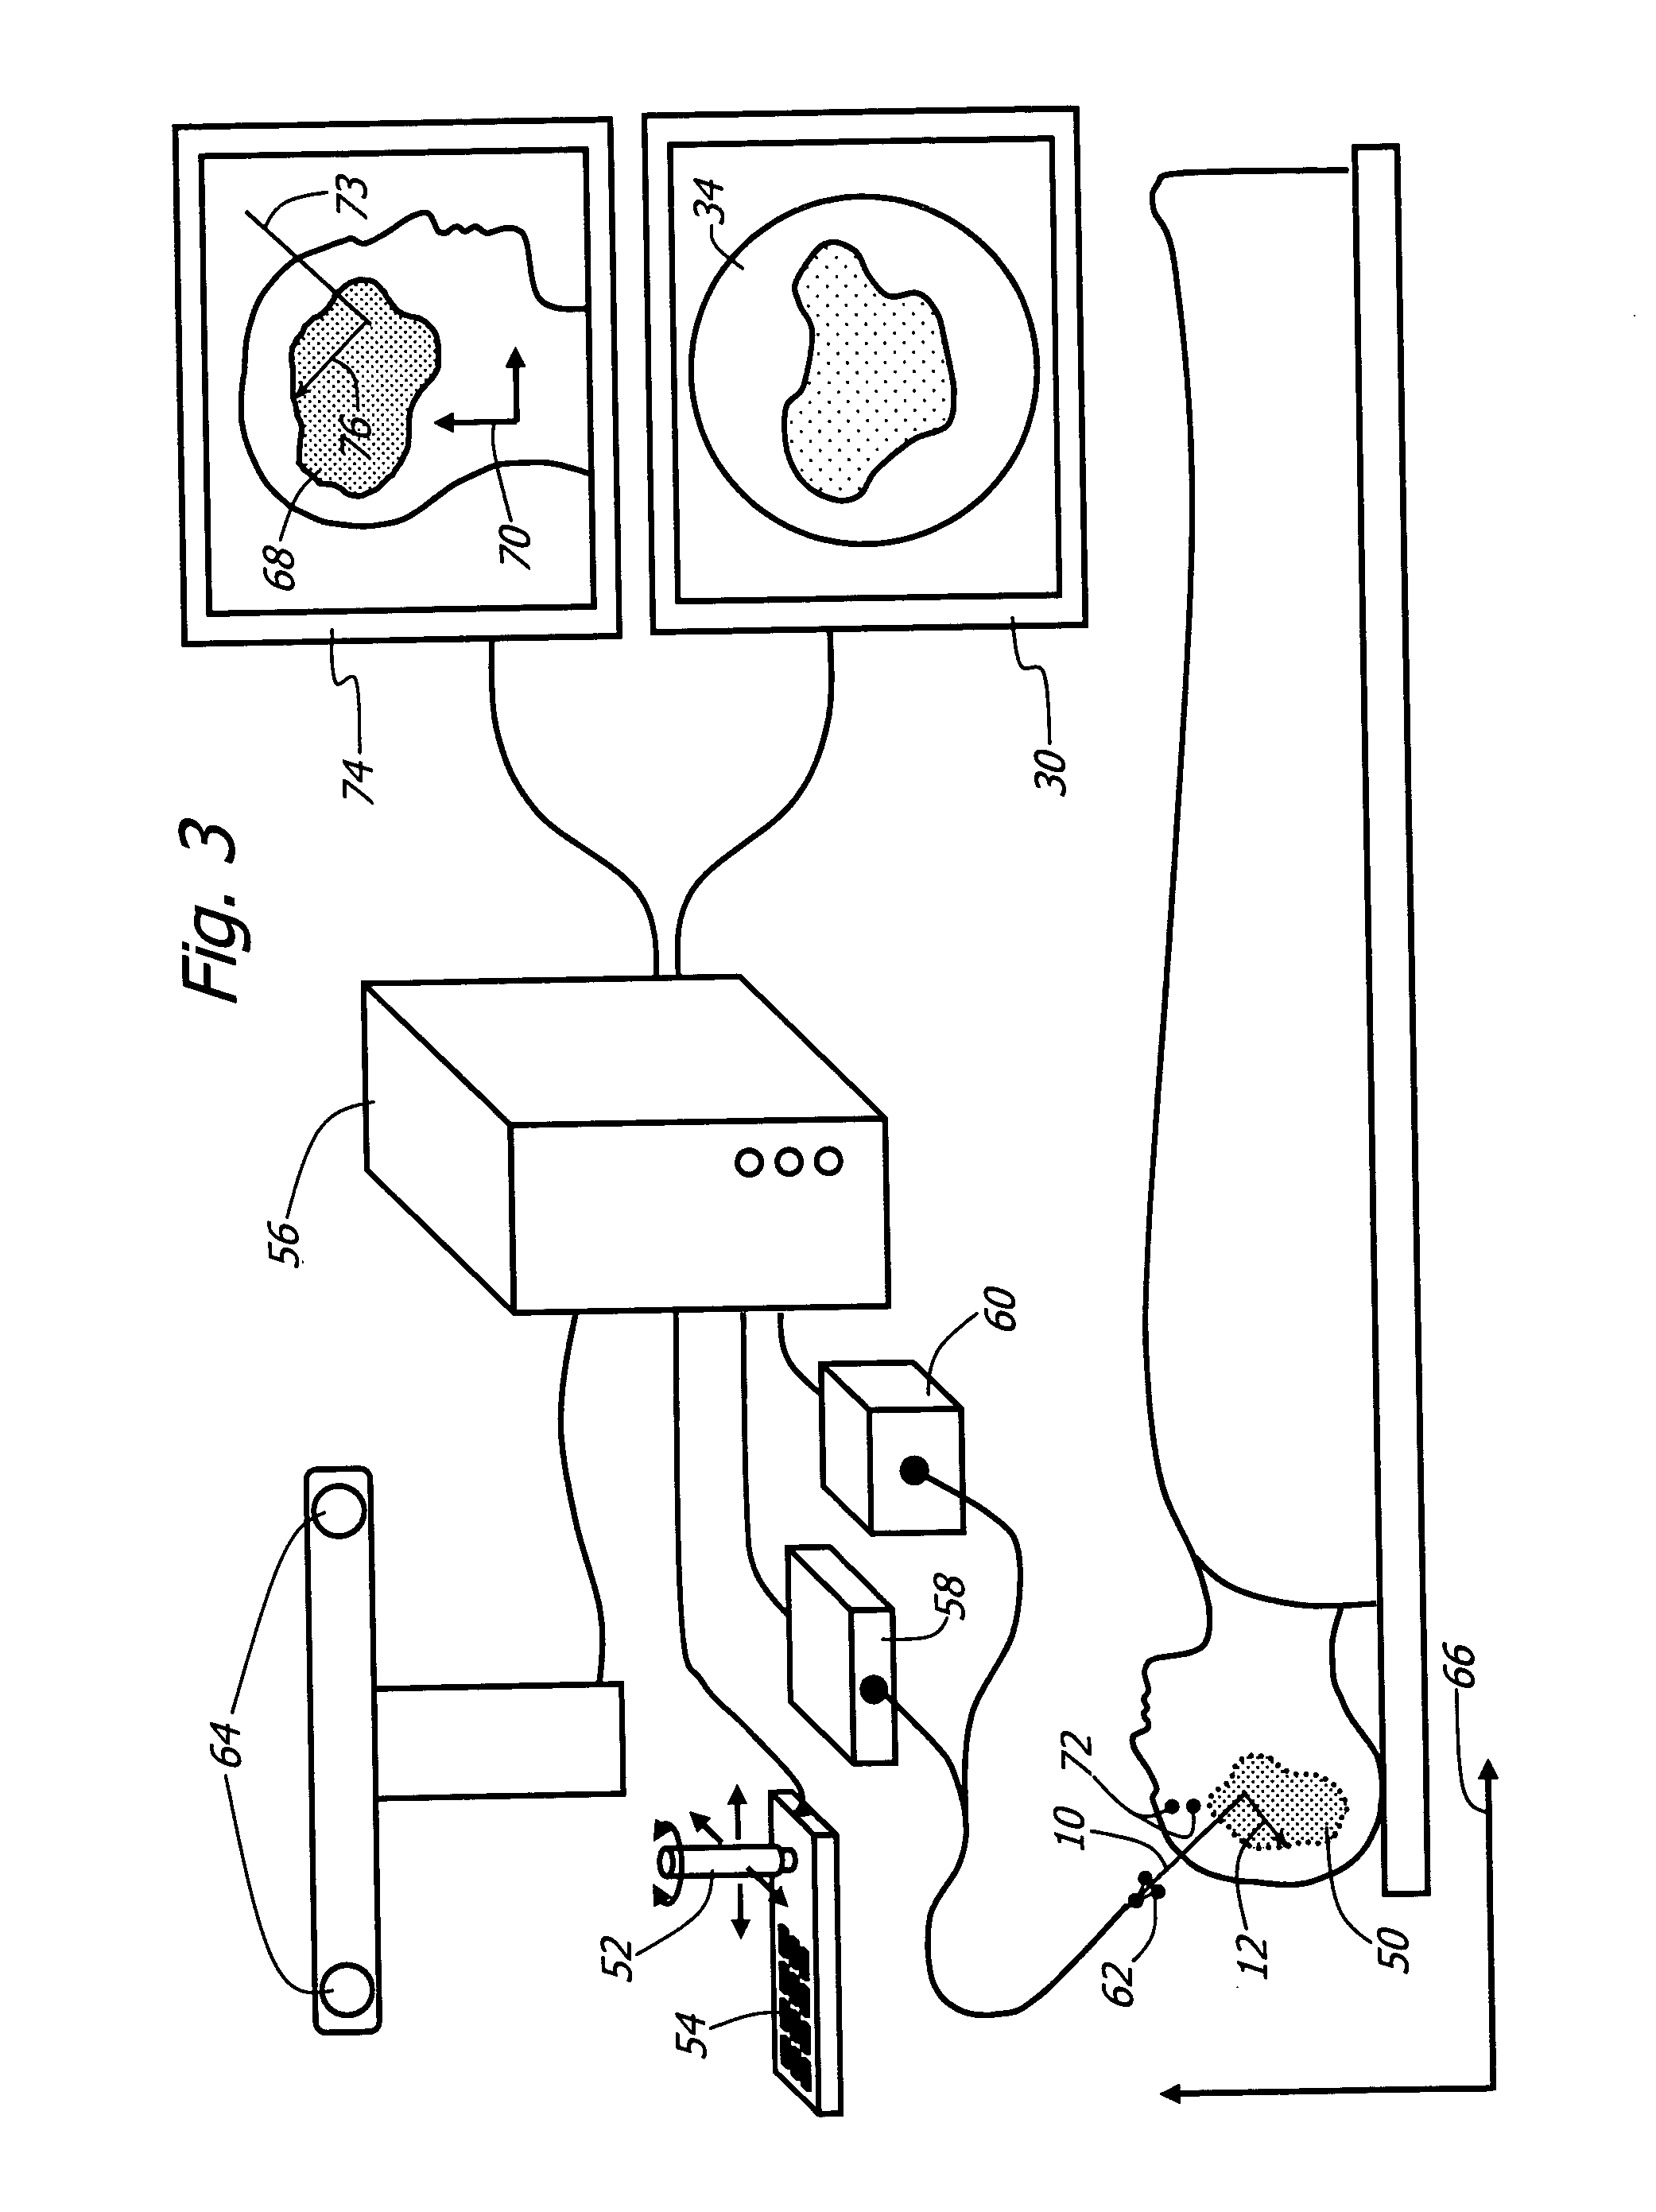 View Endoscopy Procedure: Method For Using Variable Direction